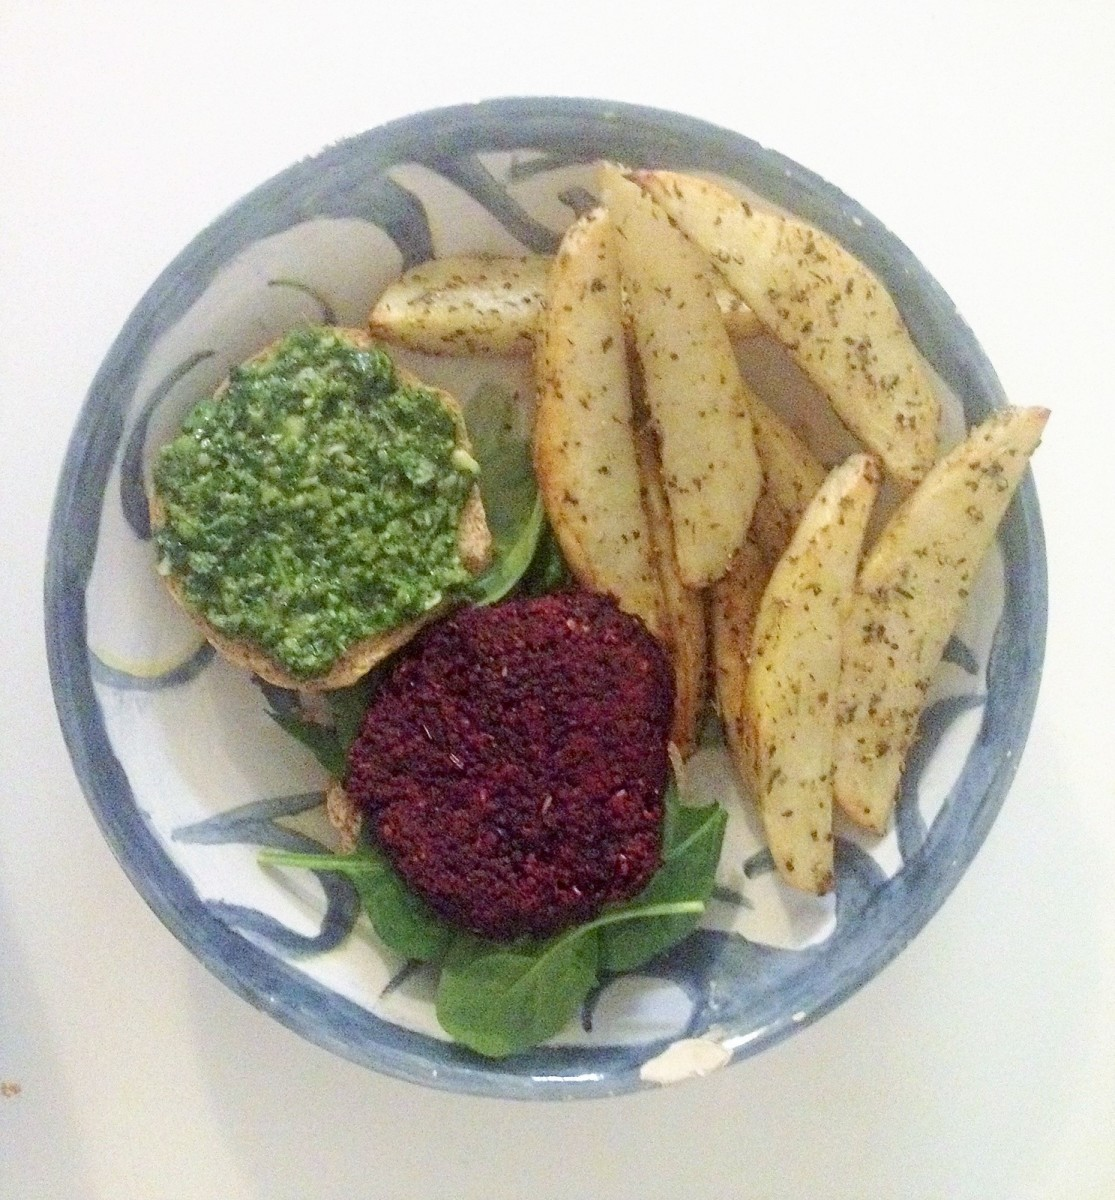 Beet burger with pesto and potato wedges